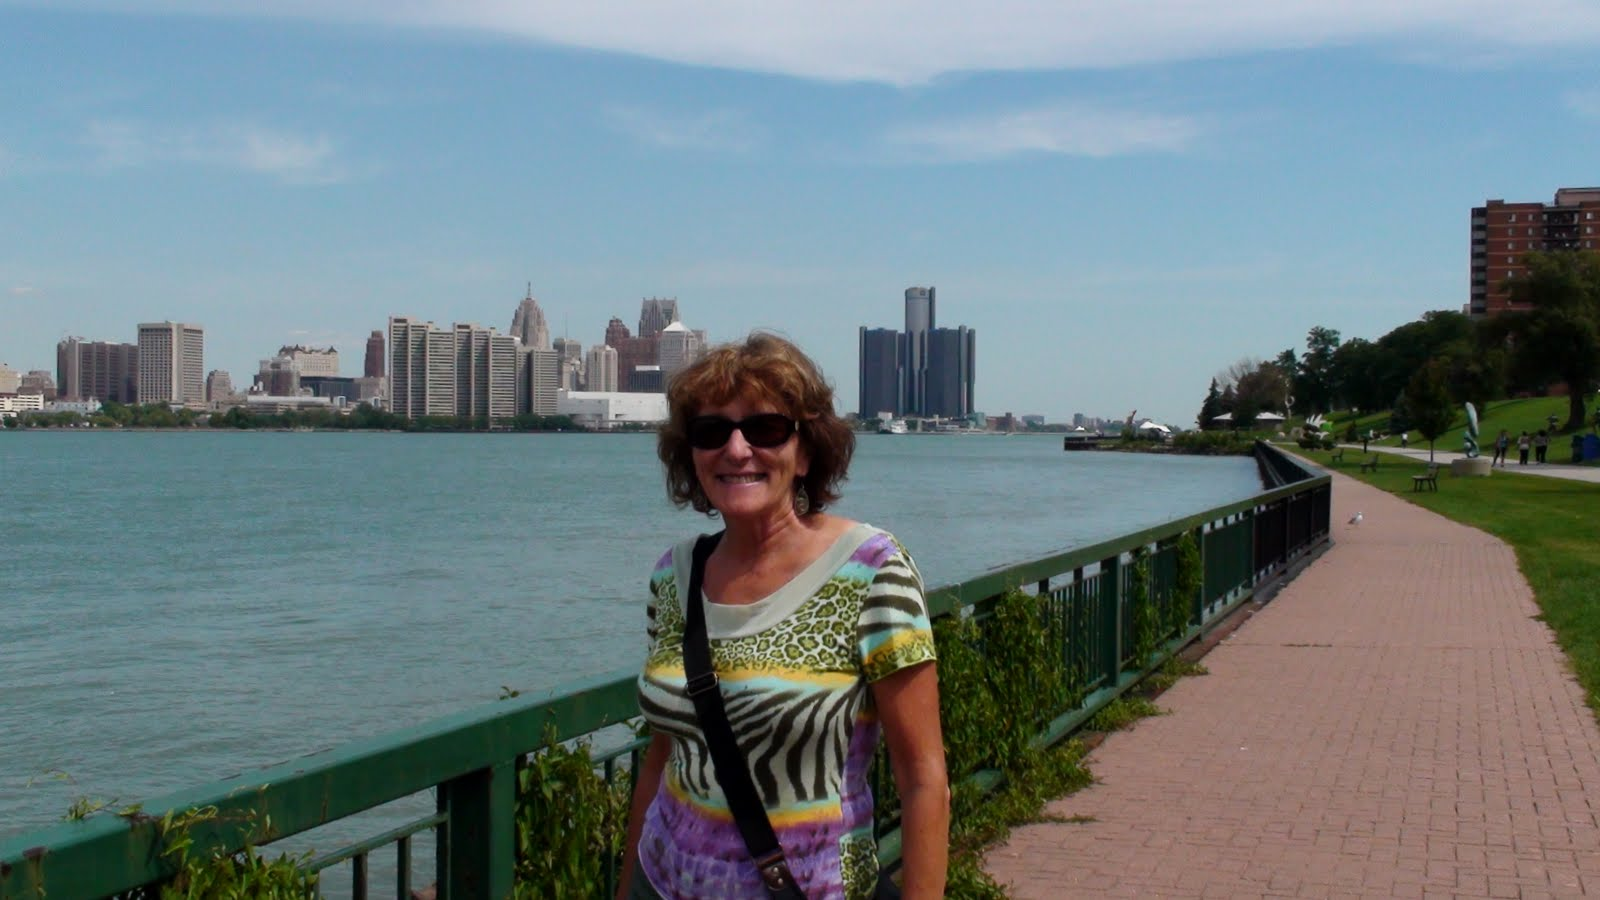 Liz in Winsdor Ontario looking across the Detroit River to Detroit, Michigan, USA.